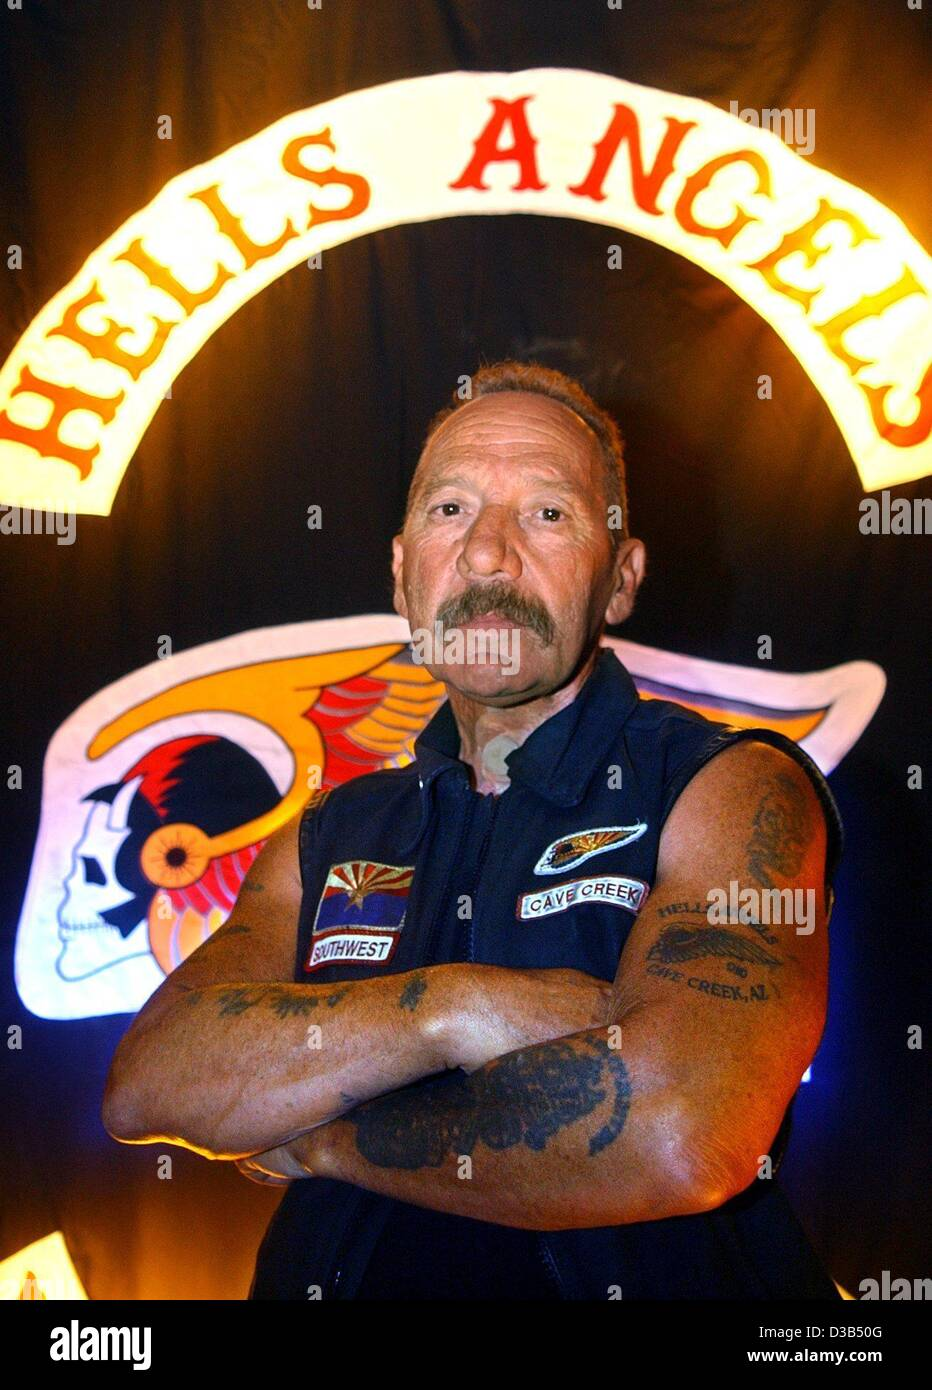 hells angles mc essays Hells angels motorcycle club kevin nelson ivy tech community college 4/15/15  for many motorists, it's the norm to feel fear when a swarm of burly guys with.